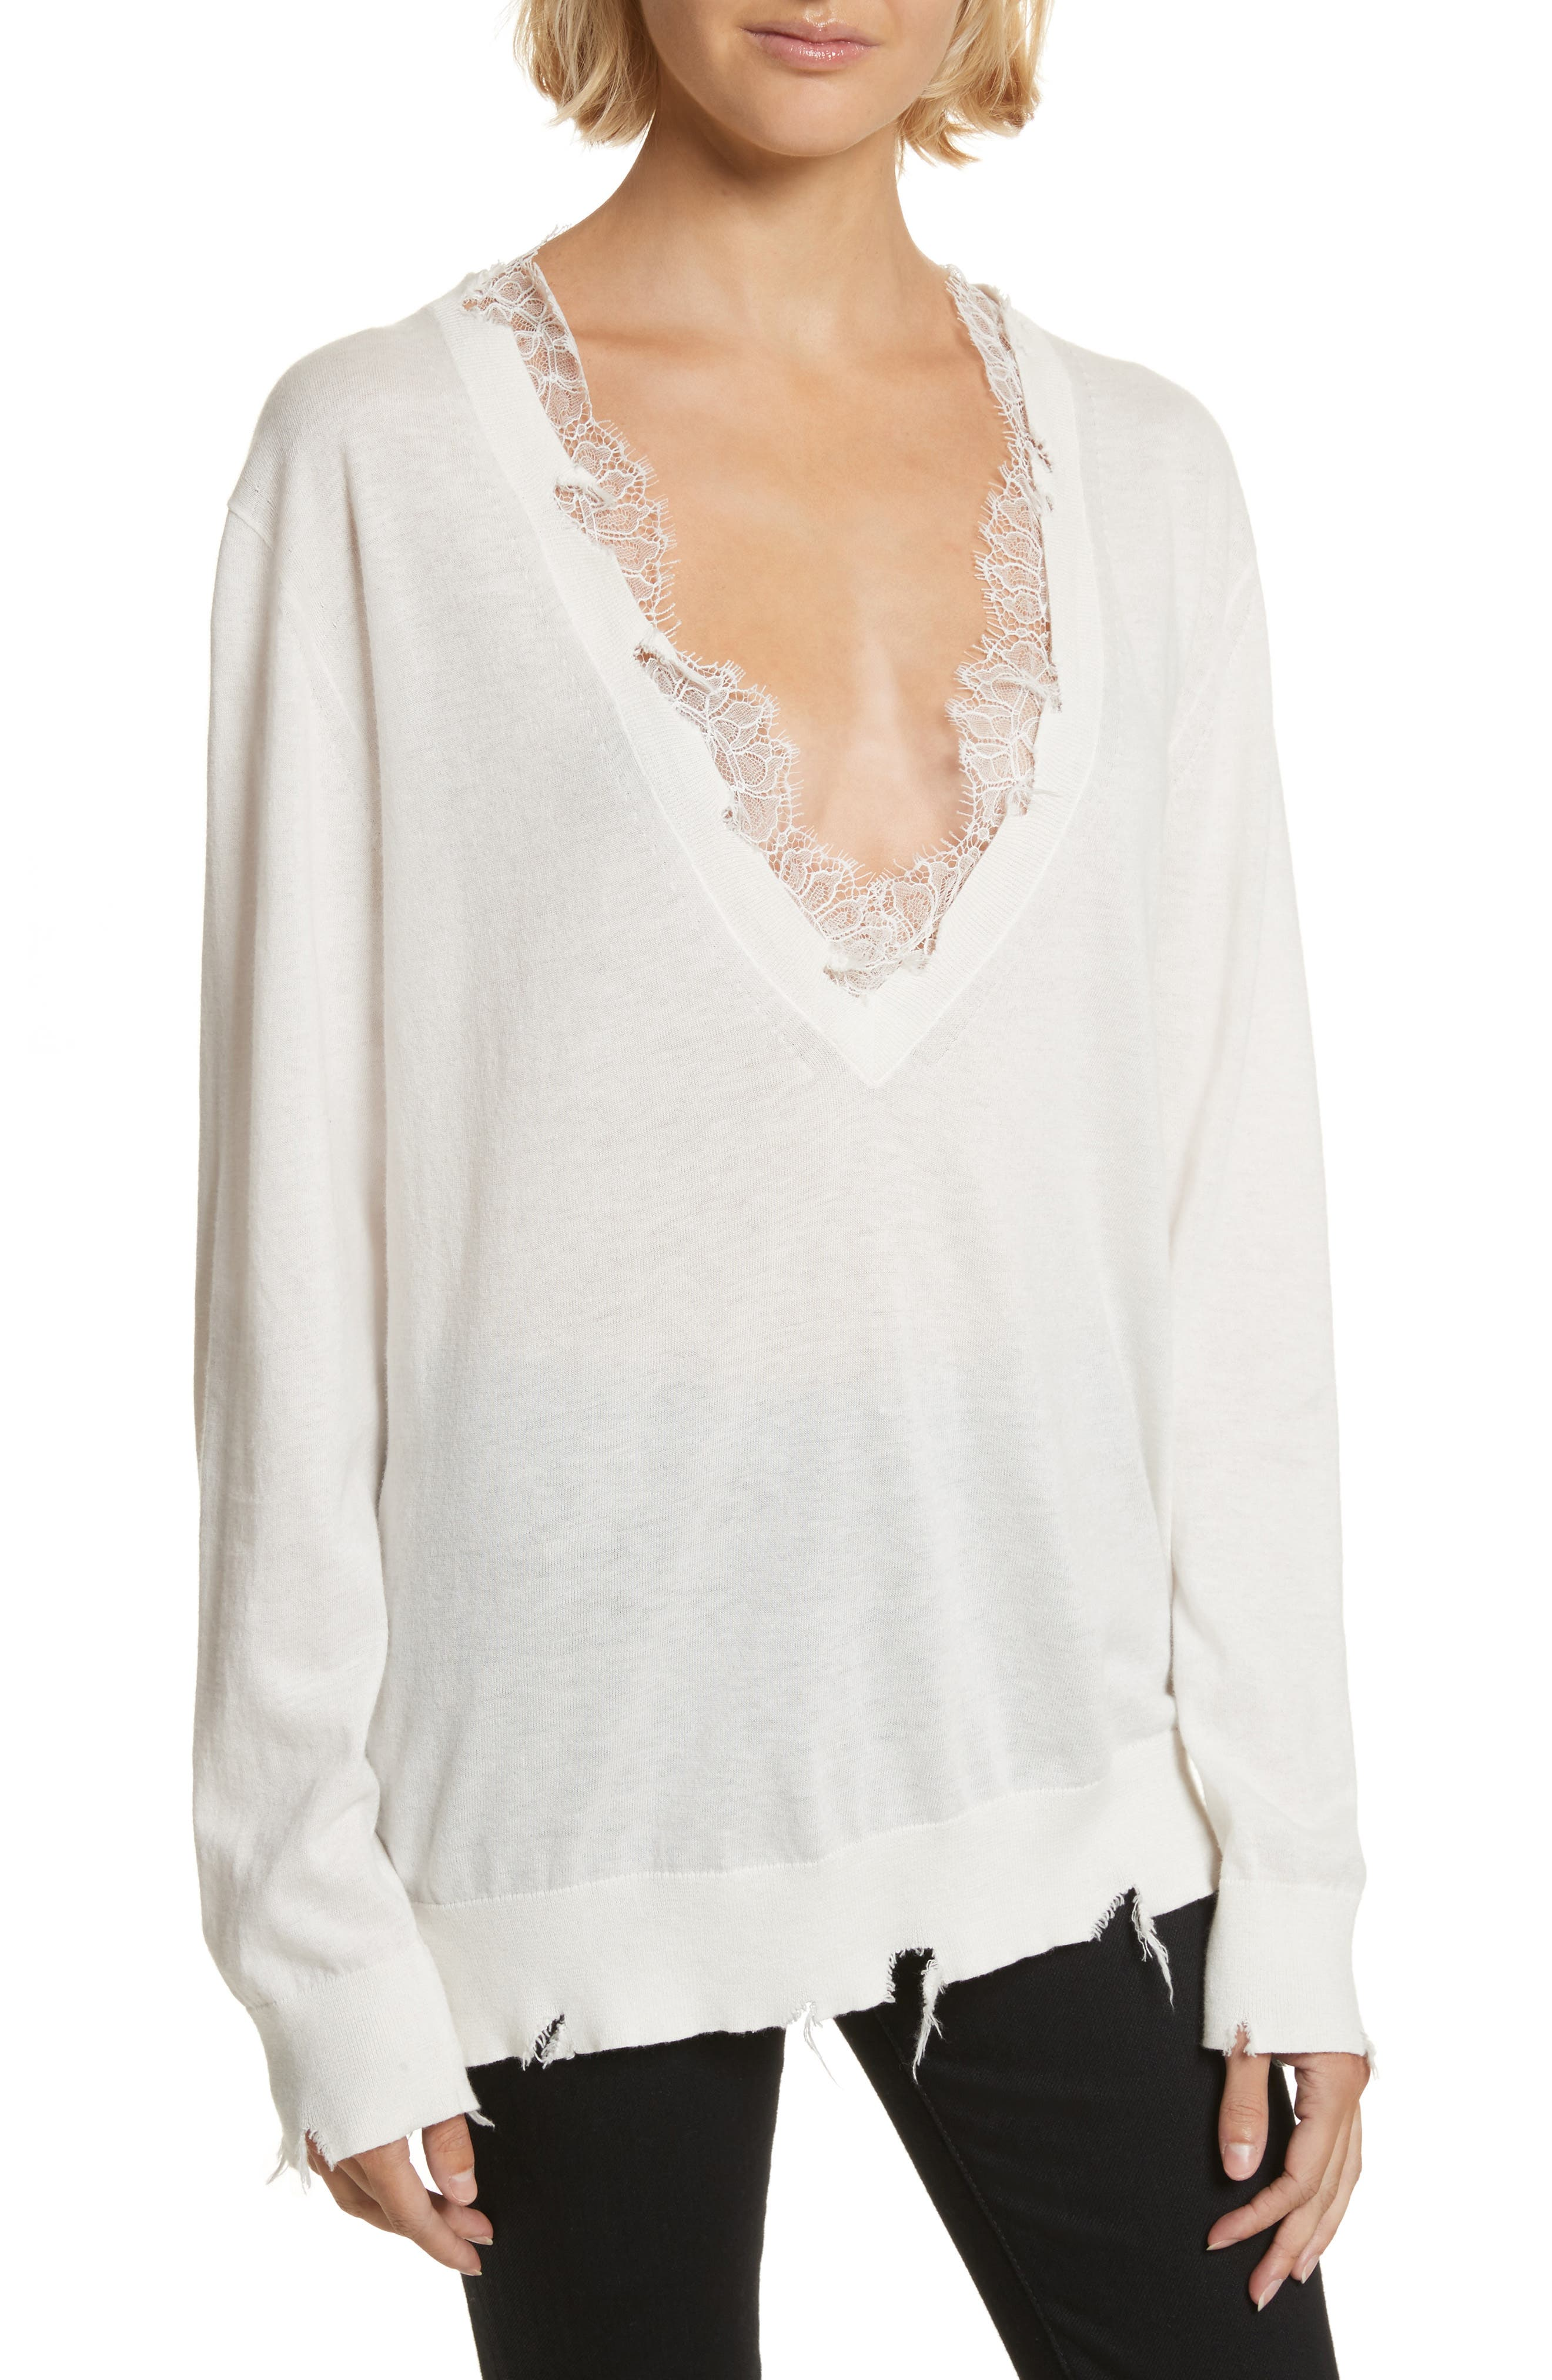 Alternate Image 1 Selected - IRO Pao Lace Trim Destroyed Sweater